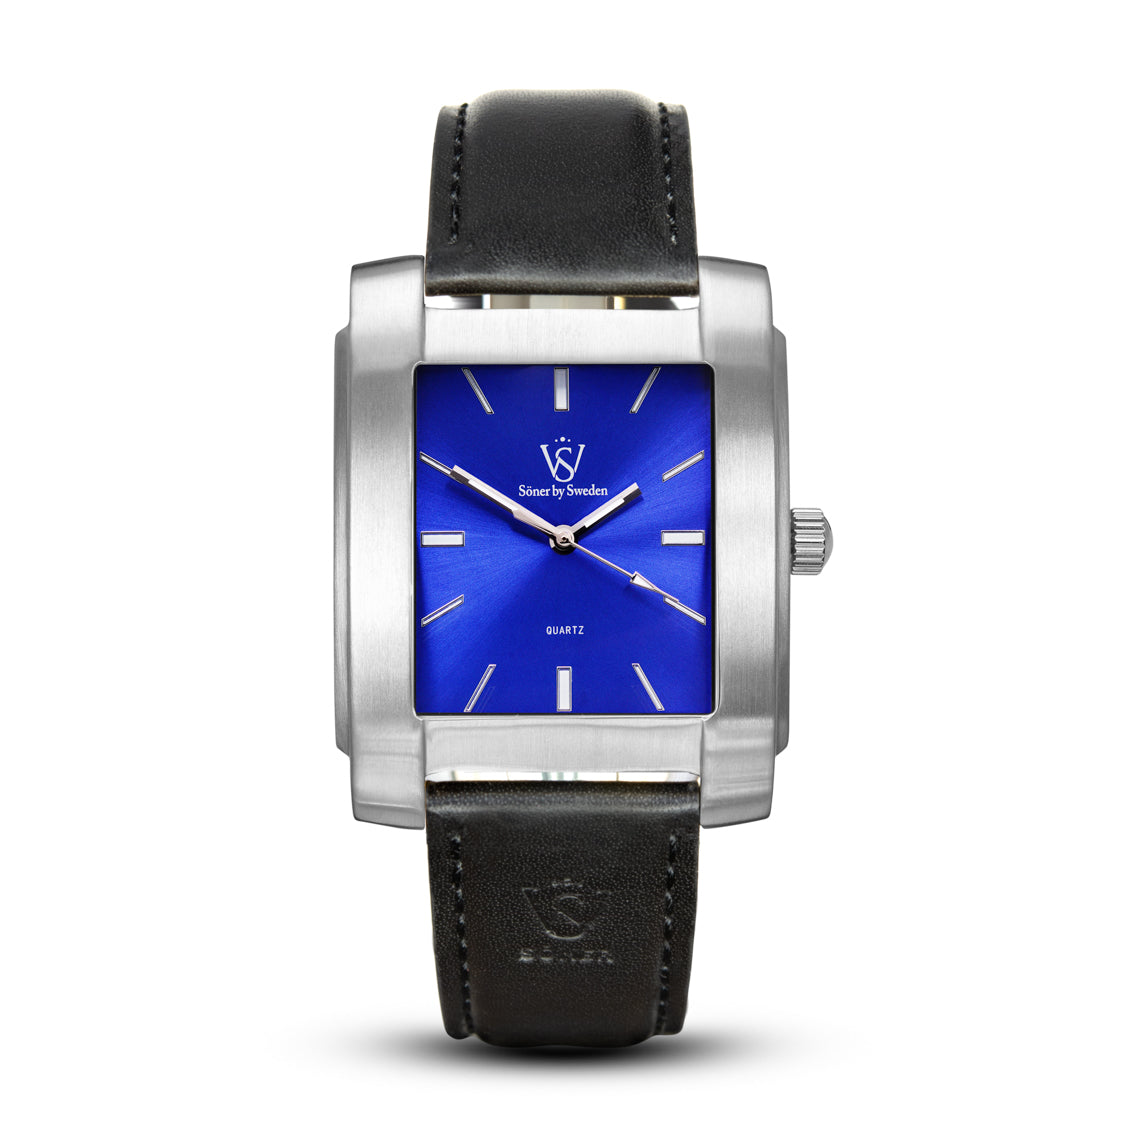 SQUARE MEN'S WATCH - LEGACY G Brushed steel - Blue dial